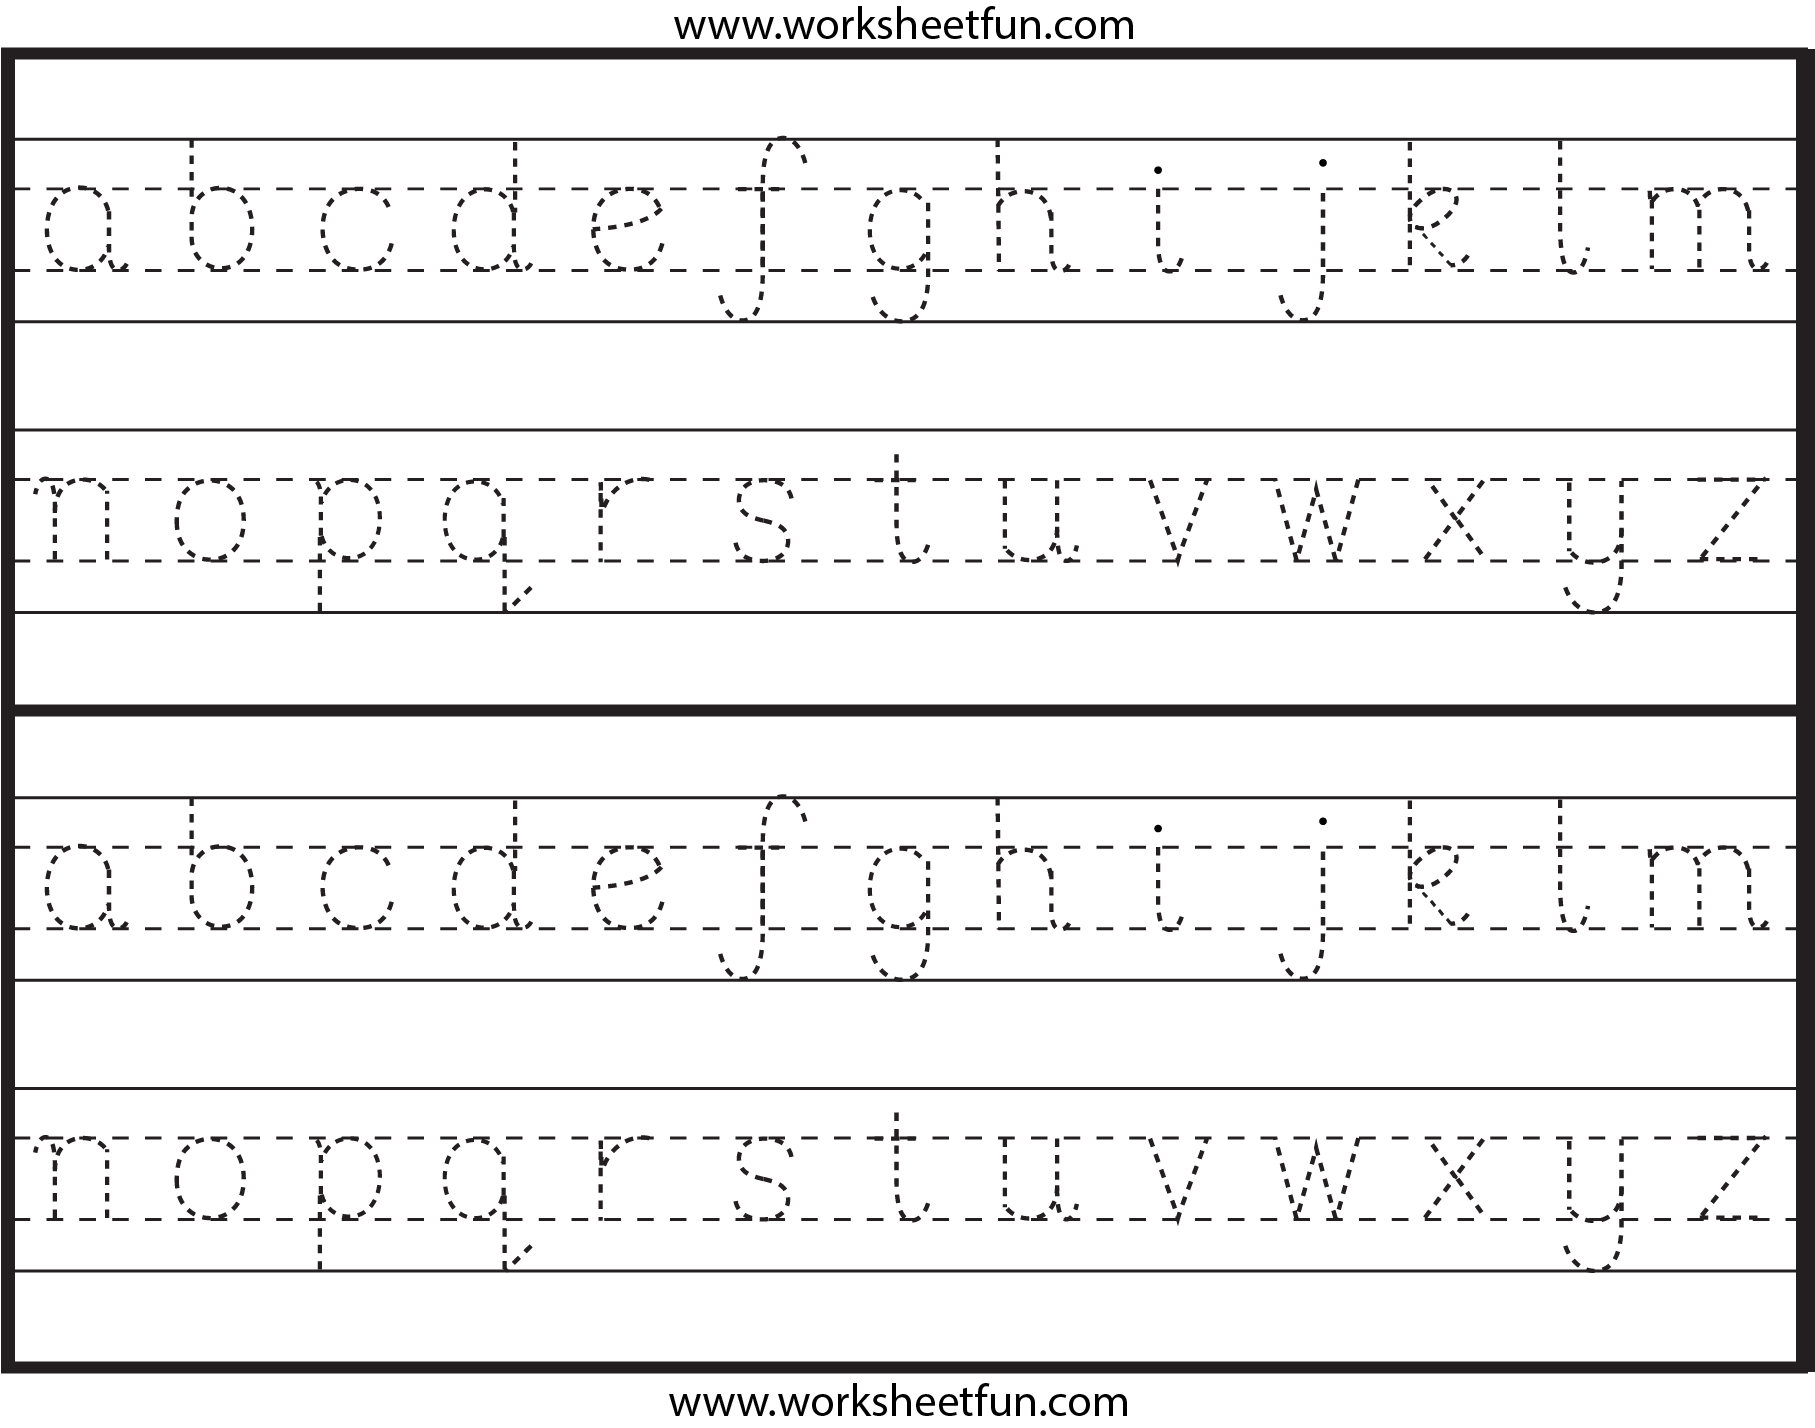 Printables Preschool Alphabet Worksheets A-z free printable worksheets alphabet letters intrepidpath 8 best images of letter tracing worksheets